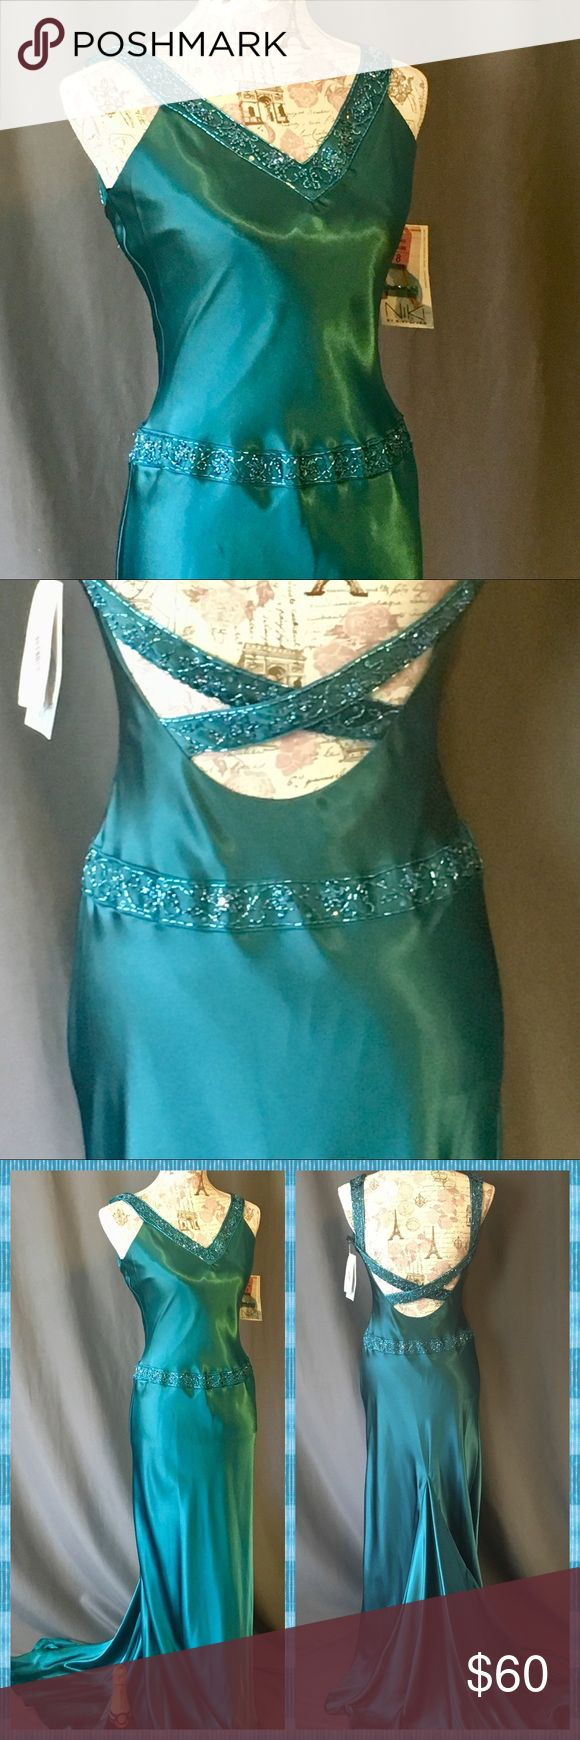 NWTS-Niki Livas Turquoise Green Evening Gown💠 SZ8 NWTS-Niki Livas Evening Gown/Bridesmaid Gown! Just spectacular... pictures tell words on this! Modeled on SZ 6 mannequin, there's room to its SZ 8. Fishtail hemline (could be altered to straight hem easily).  Especially nice for Galas or weddings where just a single witness for 'Her🆒' Please Enjoy 💚💗🌟 Niki Livas Dresses Wedding